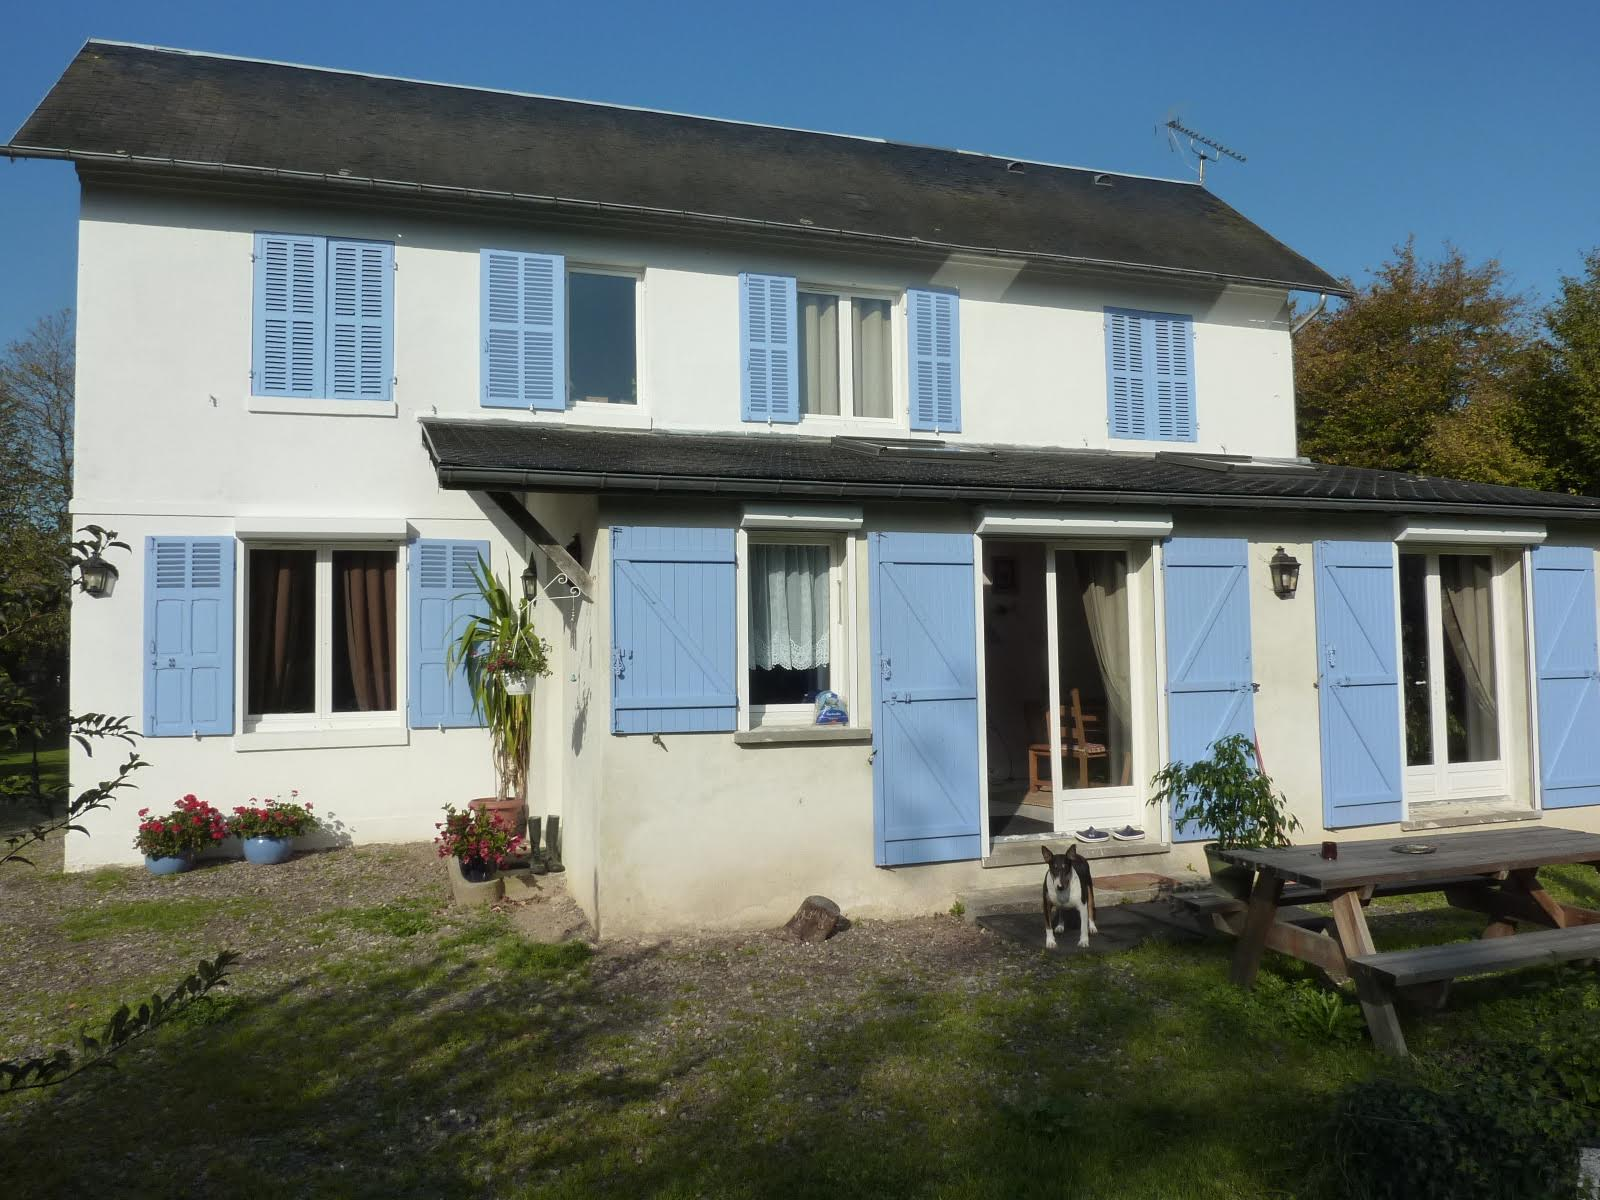 ventes maison de construction traditionnelle r gion